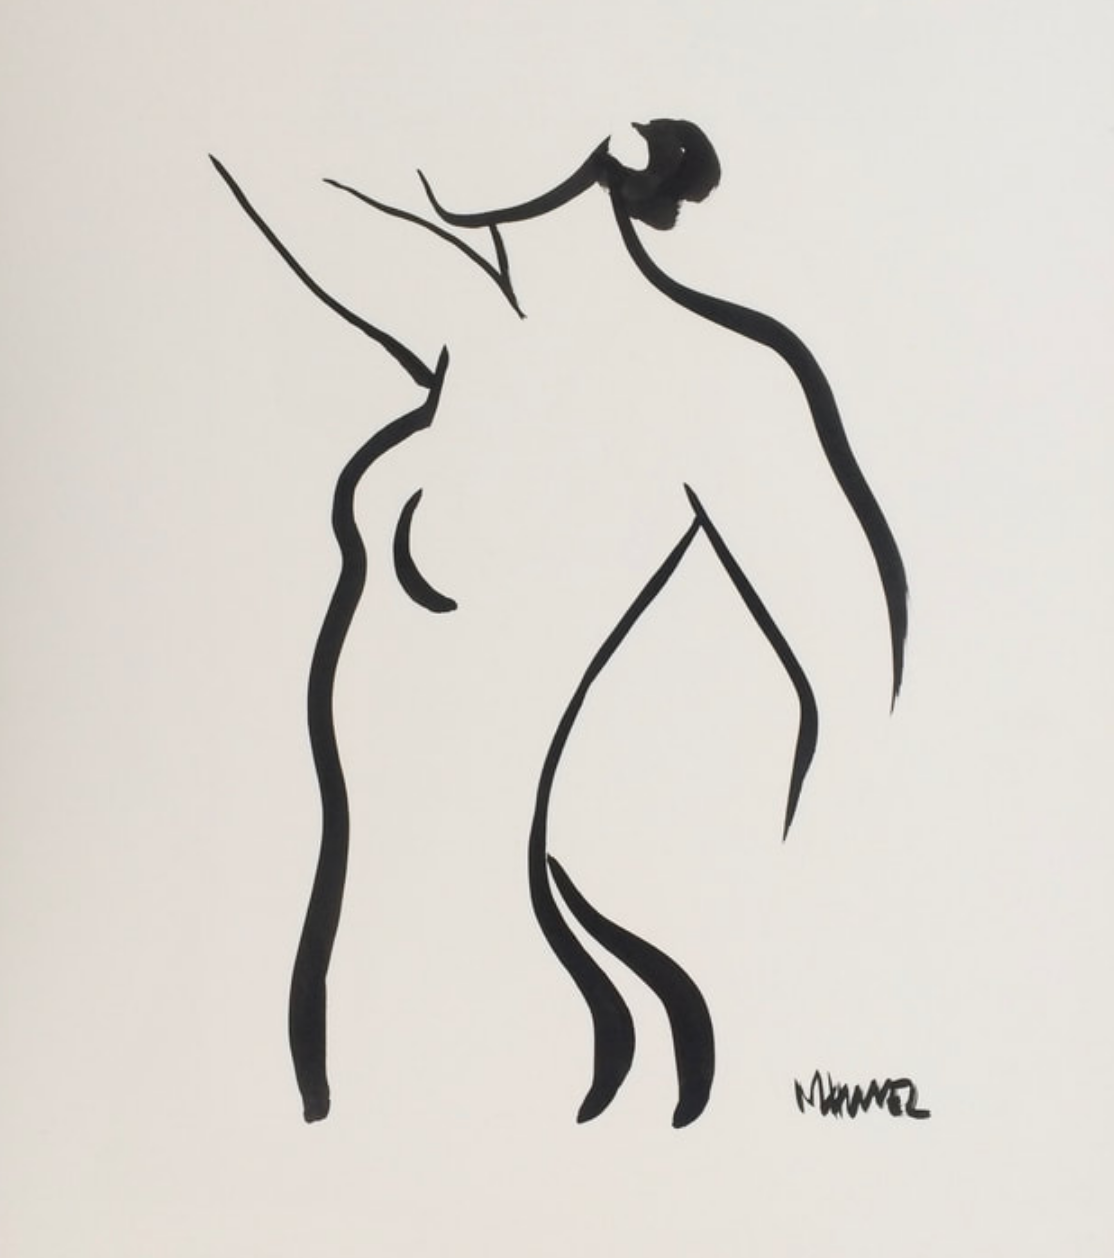 20 x 16 Nude Ink #1334